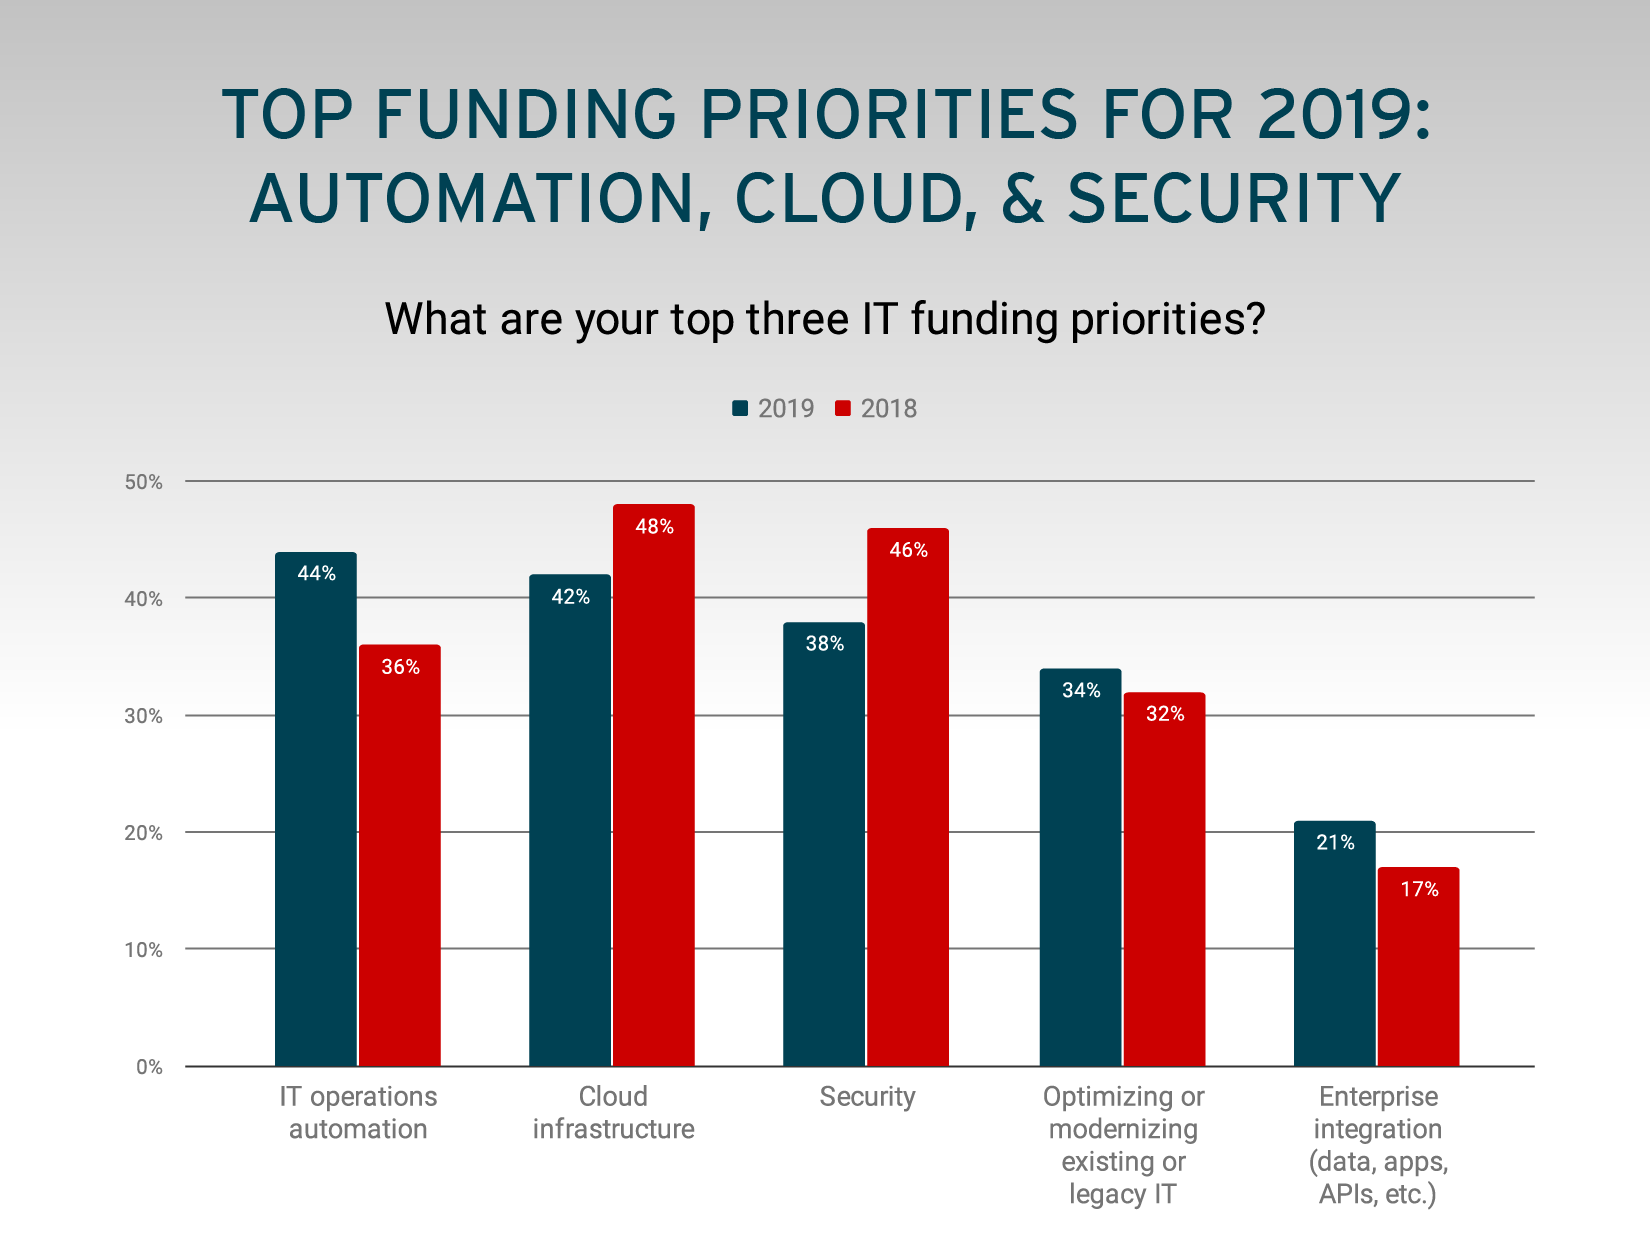 Top Funding Priorities for 2019